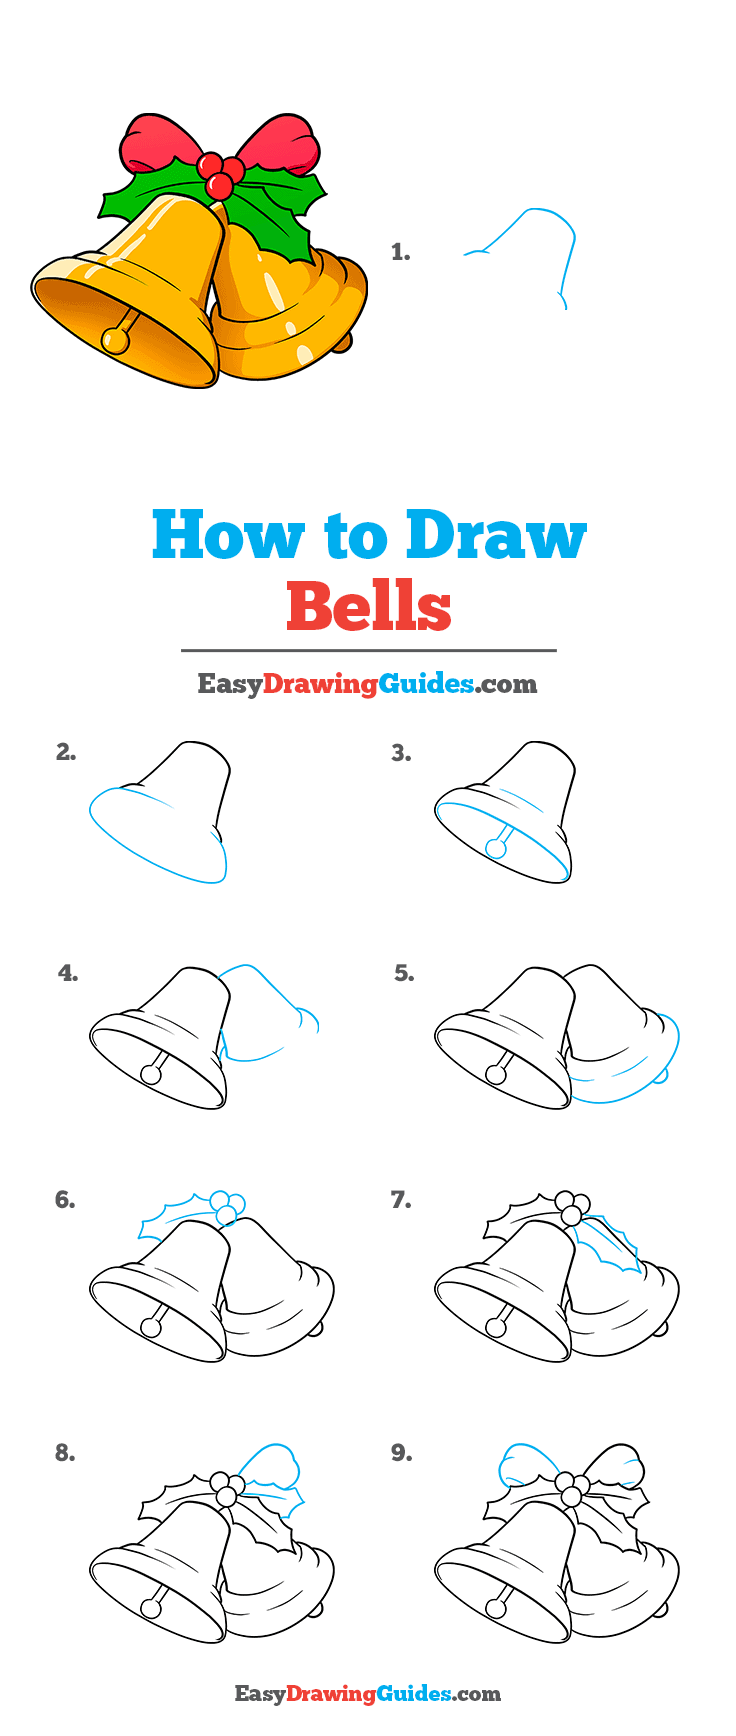 How to Draw Bells Step by Step Tutorial Image